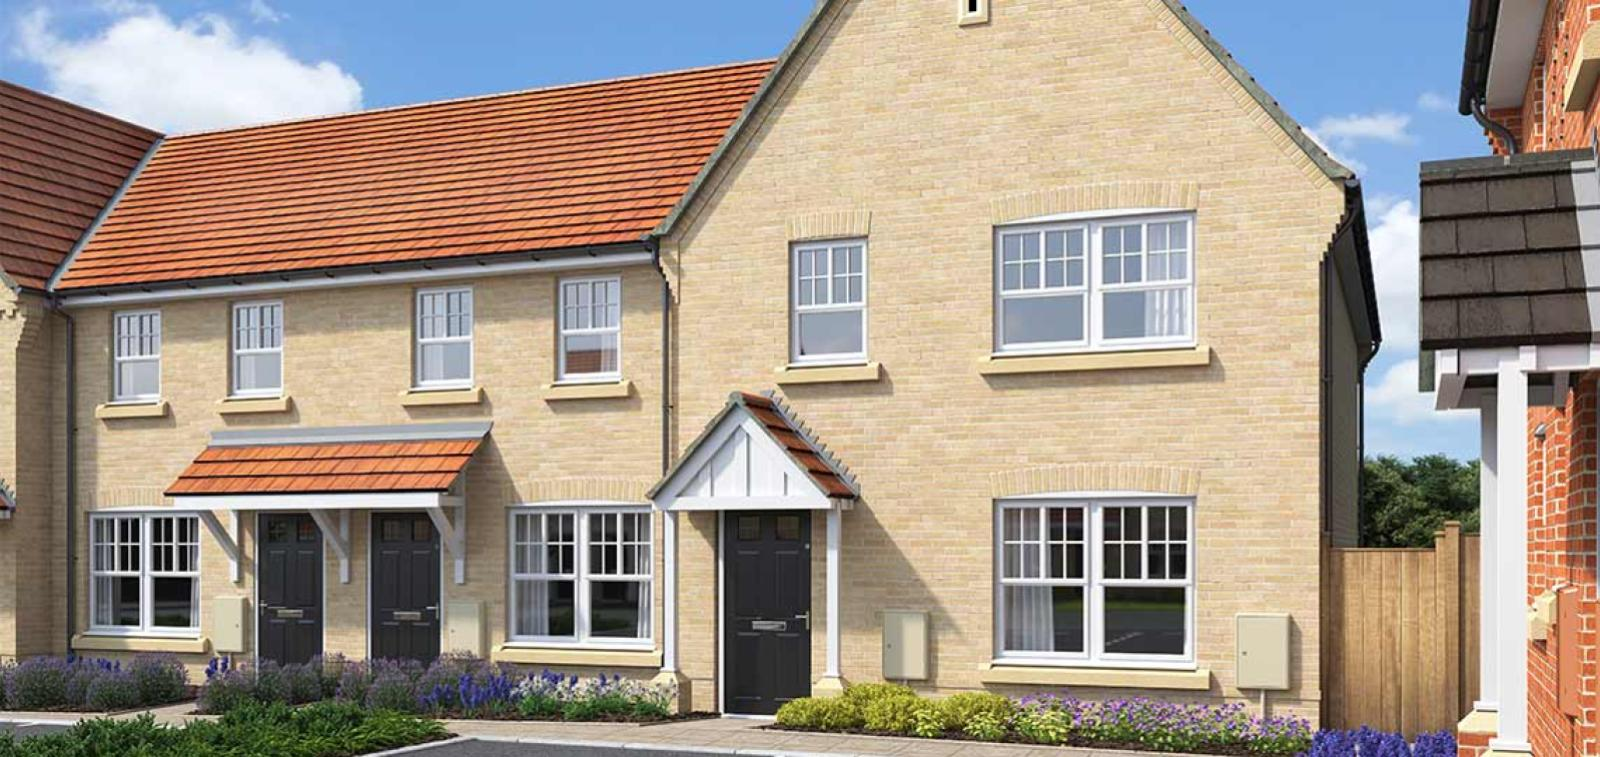 CGI rendering of the Halyard house type at High Elms Park